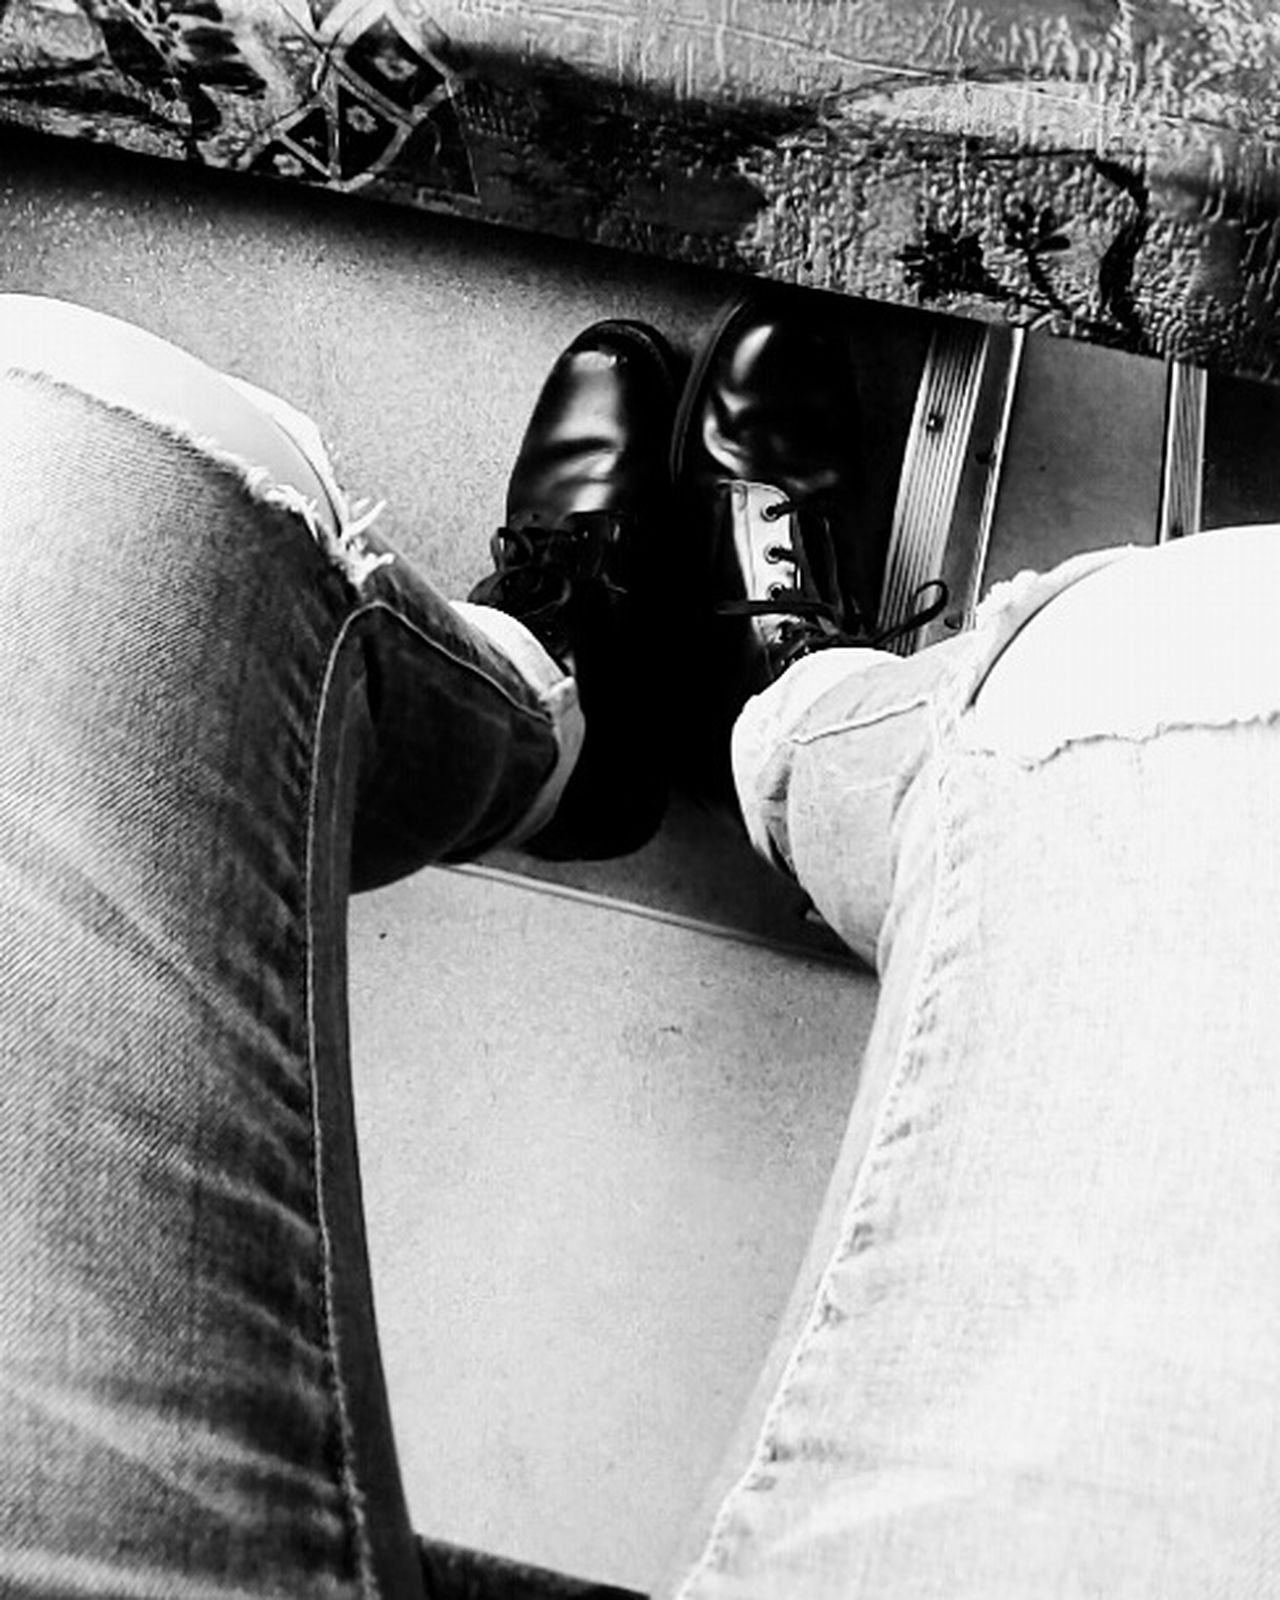 Hi! Shoes ♥ Black & White Black Shoes Jeans Legs Girl Going Home Lithuania Panevėžys FolowMe ✌ Folowforfollow